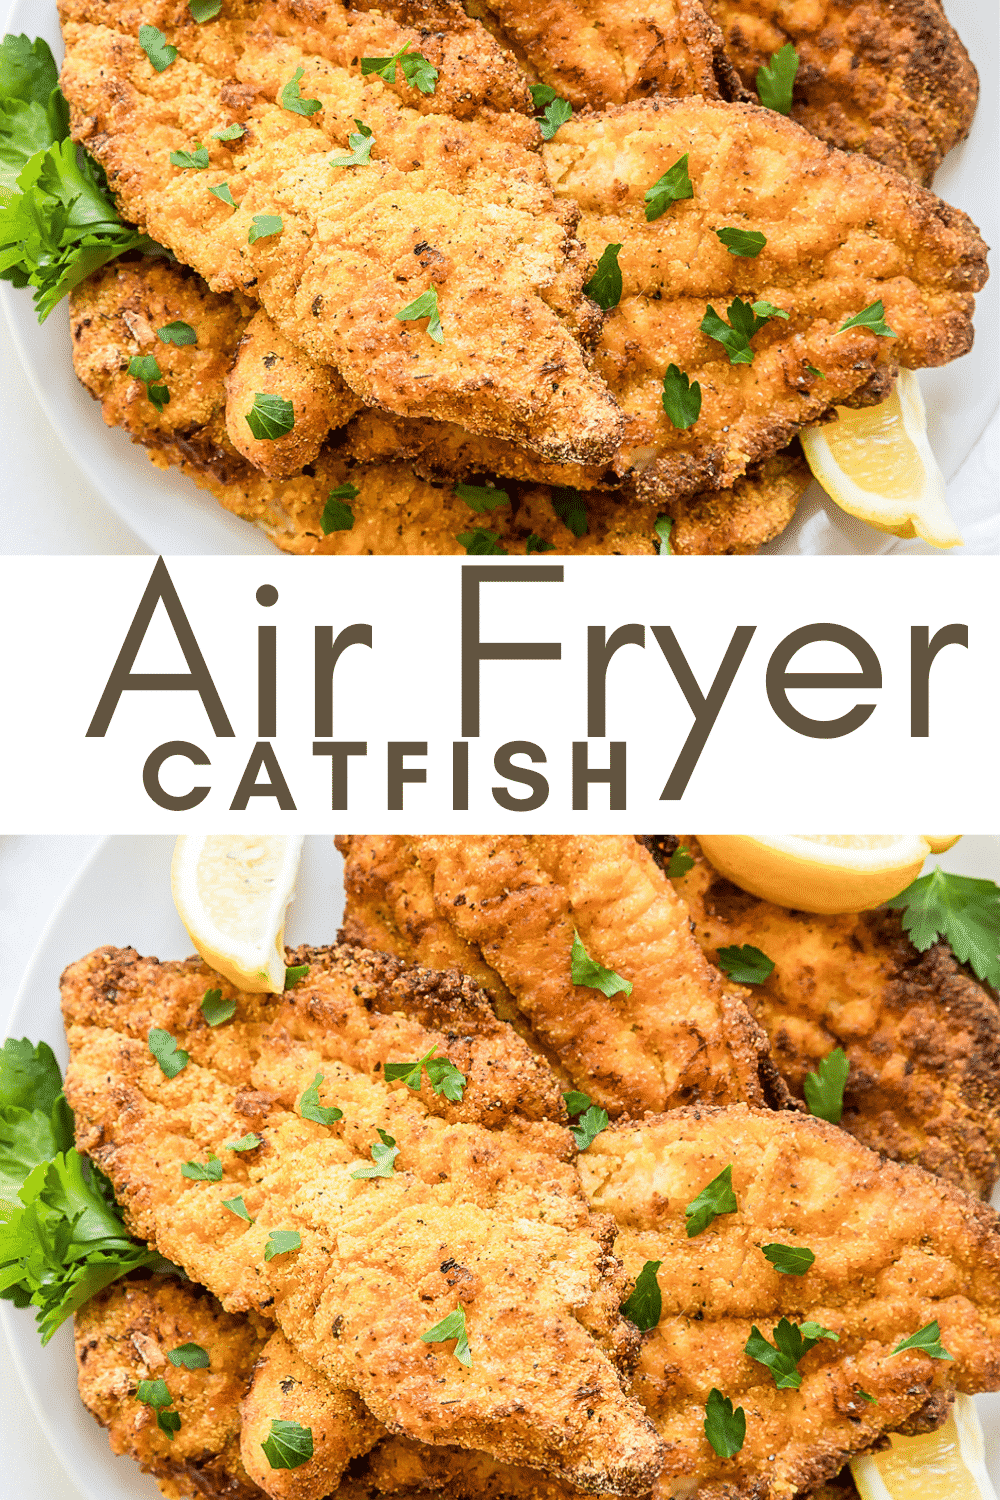 Air Fryer Catfish is the crispiest white fish without all the hot oil! These crunchy filets are coated in seasoned cornmeal and marinated in buttermilk for the best flaky fish in a flash. #airfryercatfish #airfryerfish via @vegetarianmamma